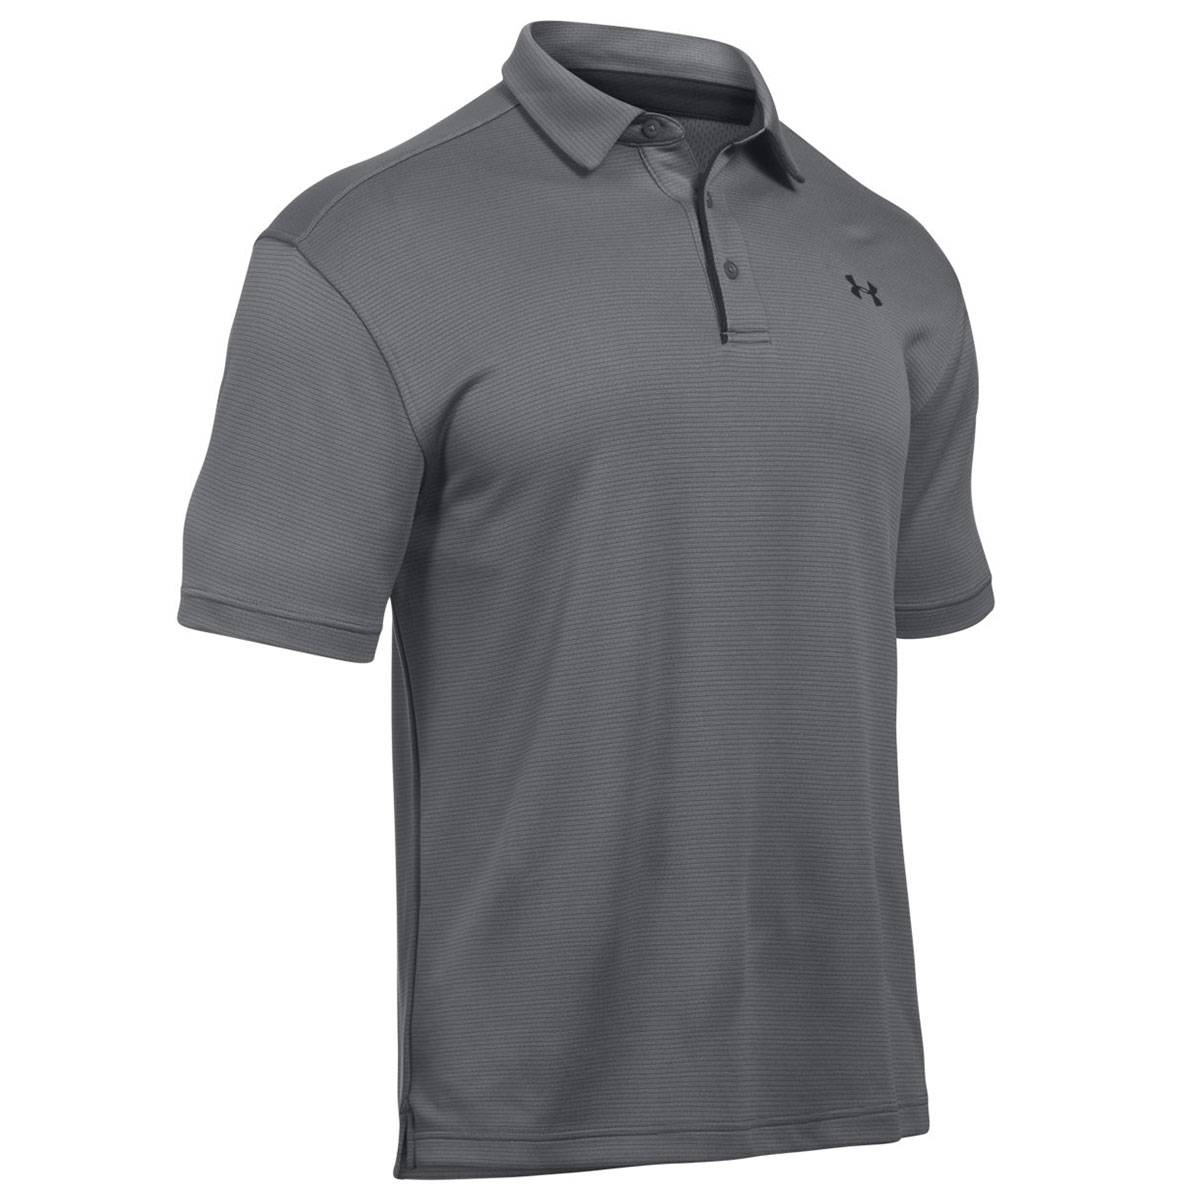 3c2c8a0b ... Armour Mens Tech Loose Lightweight Breathable Wicking Polo Shirt S  Graphite / Black 96 Polyester 4 Elastane. About this product. Picture 1 of  3; Picture ...